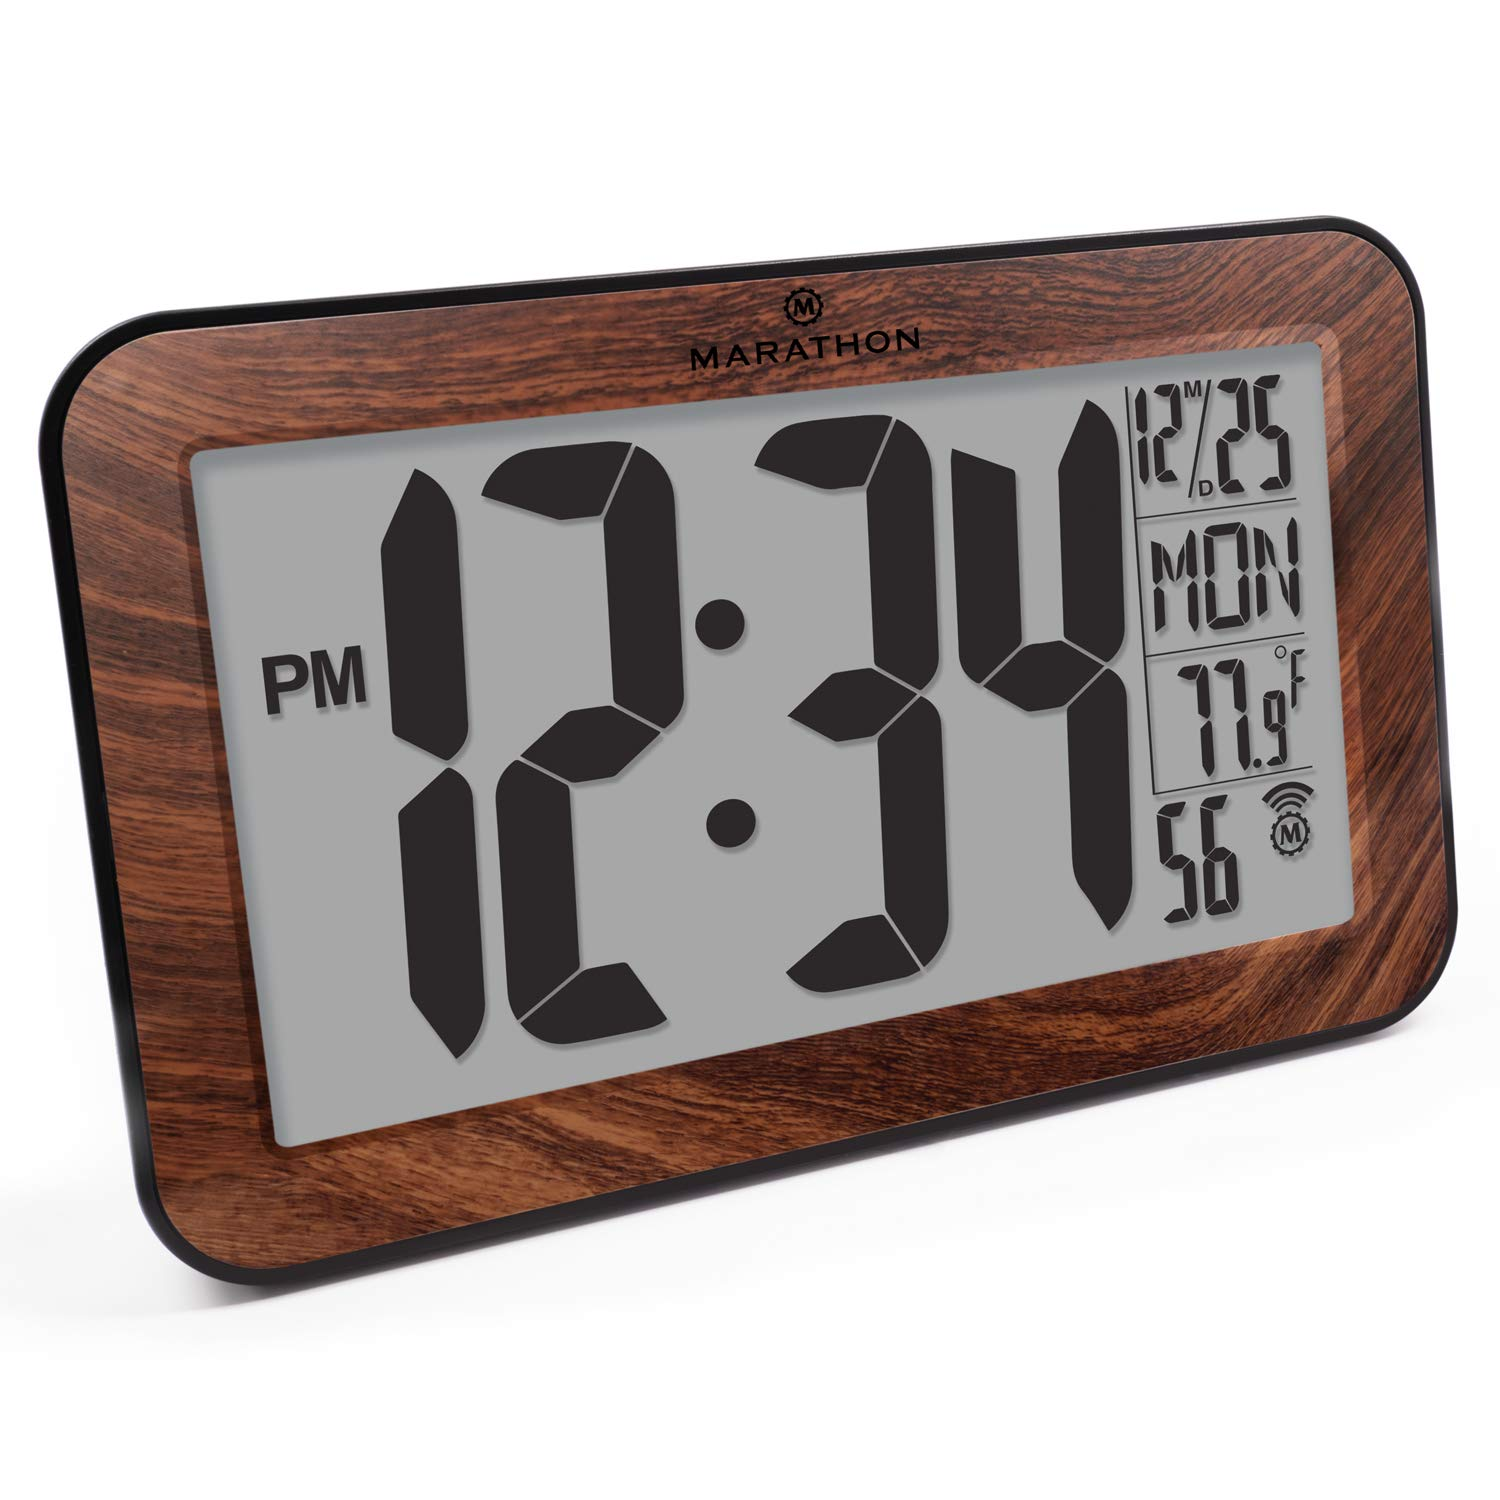 Marathon CL030033WD Commercial Grade Panoramic Atomic Wall Clock with Table Stand - Batteries Included, Color-Wood Tone.